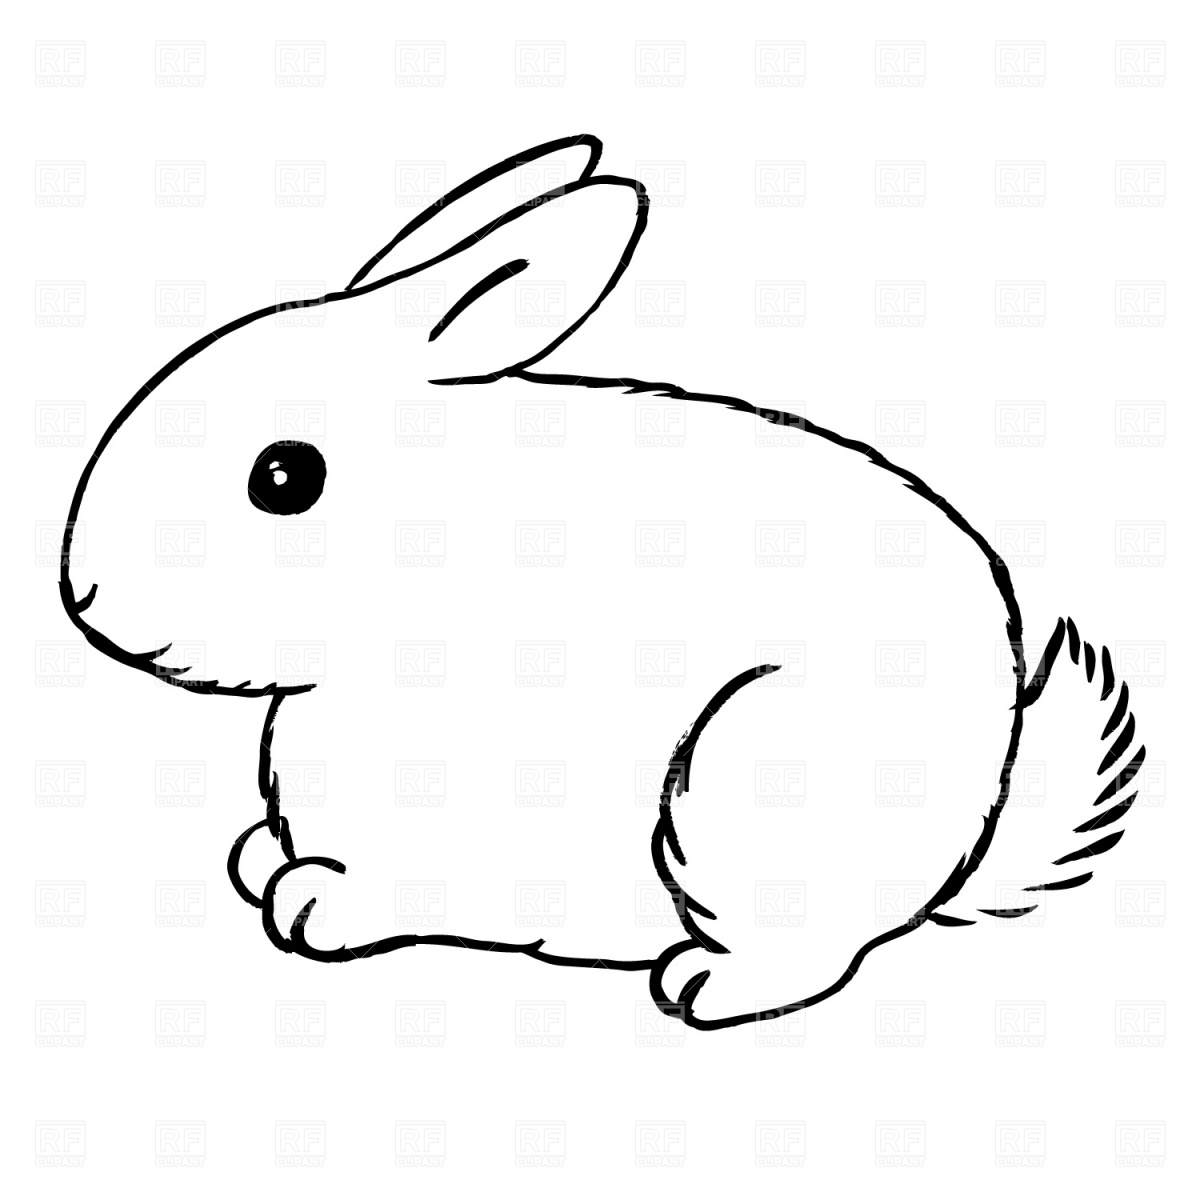 Bunny clipart #11, Download drawings